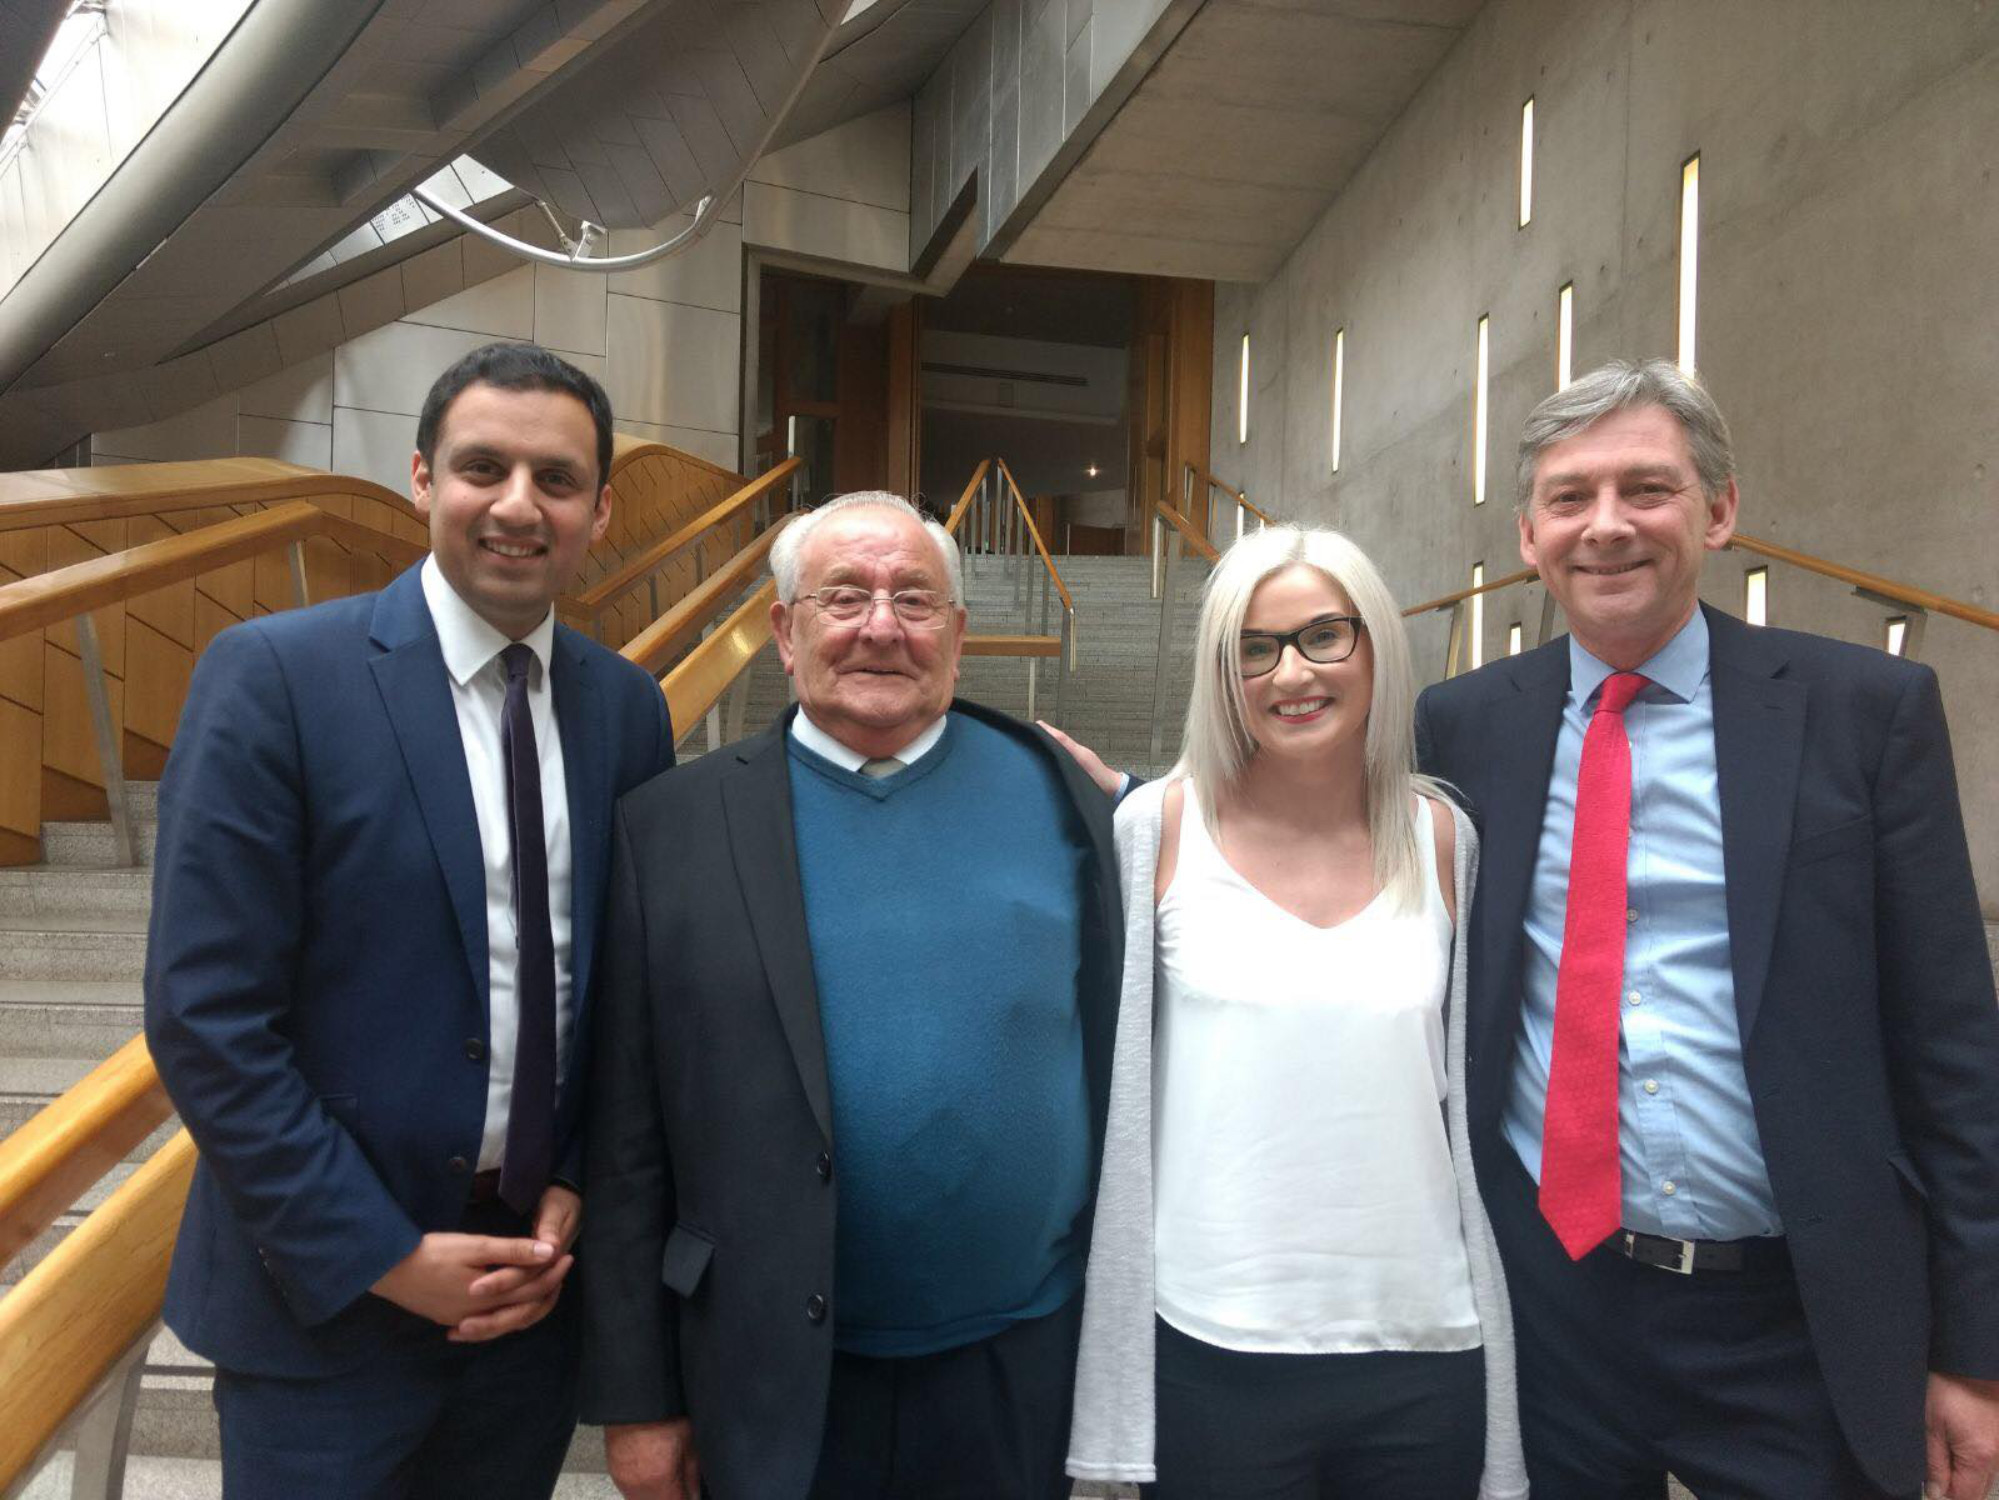 David Ramsay's father David snr and his niece Gillian Murray with Anas Sarwar MSP and Scottish Labour leader Richard Leonard at Holyrood.